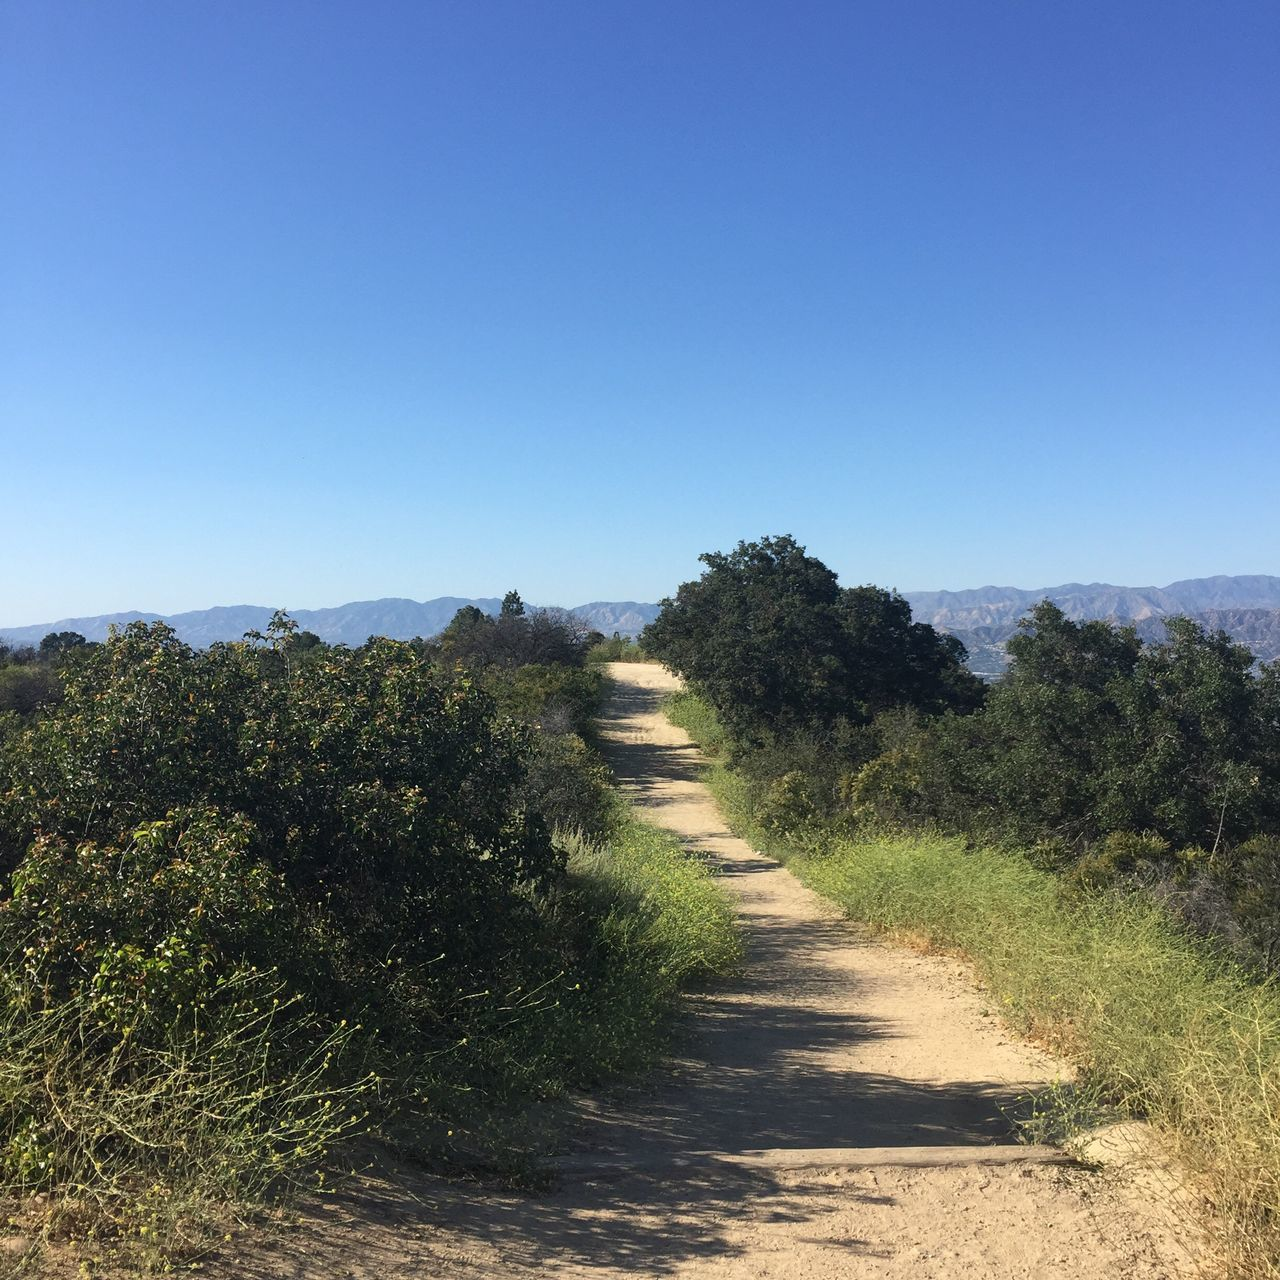 It's not a very long trail run but the views were spectacular. Clear Sky Landscape The Way Forward Tranquil Scene Copy Space Nature Tree Tranquility Grass Plant No People Day Scenics Sunlight Beauty In Nature Blue Growth Outdoors Sky (null)Trail Running Trail Running